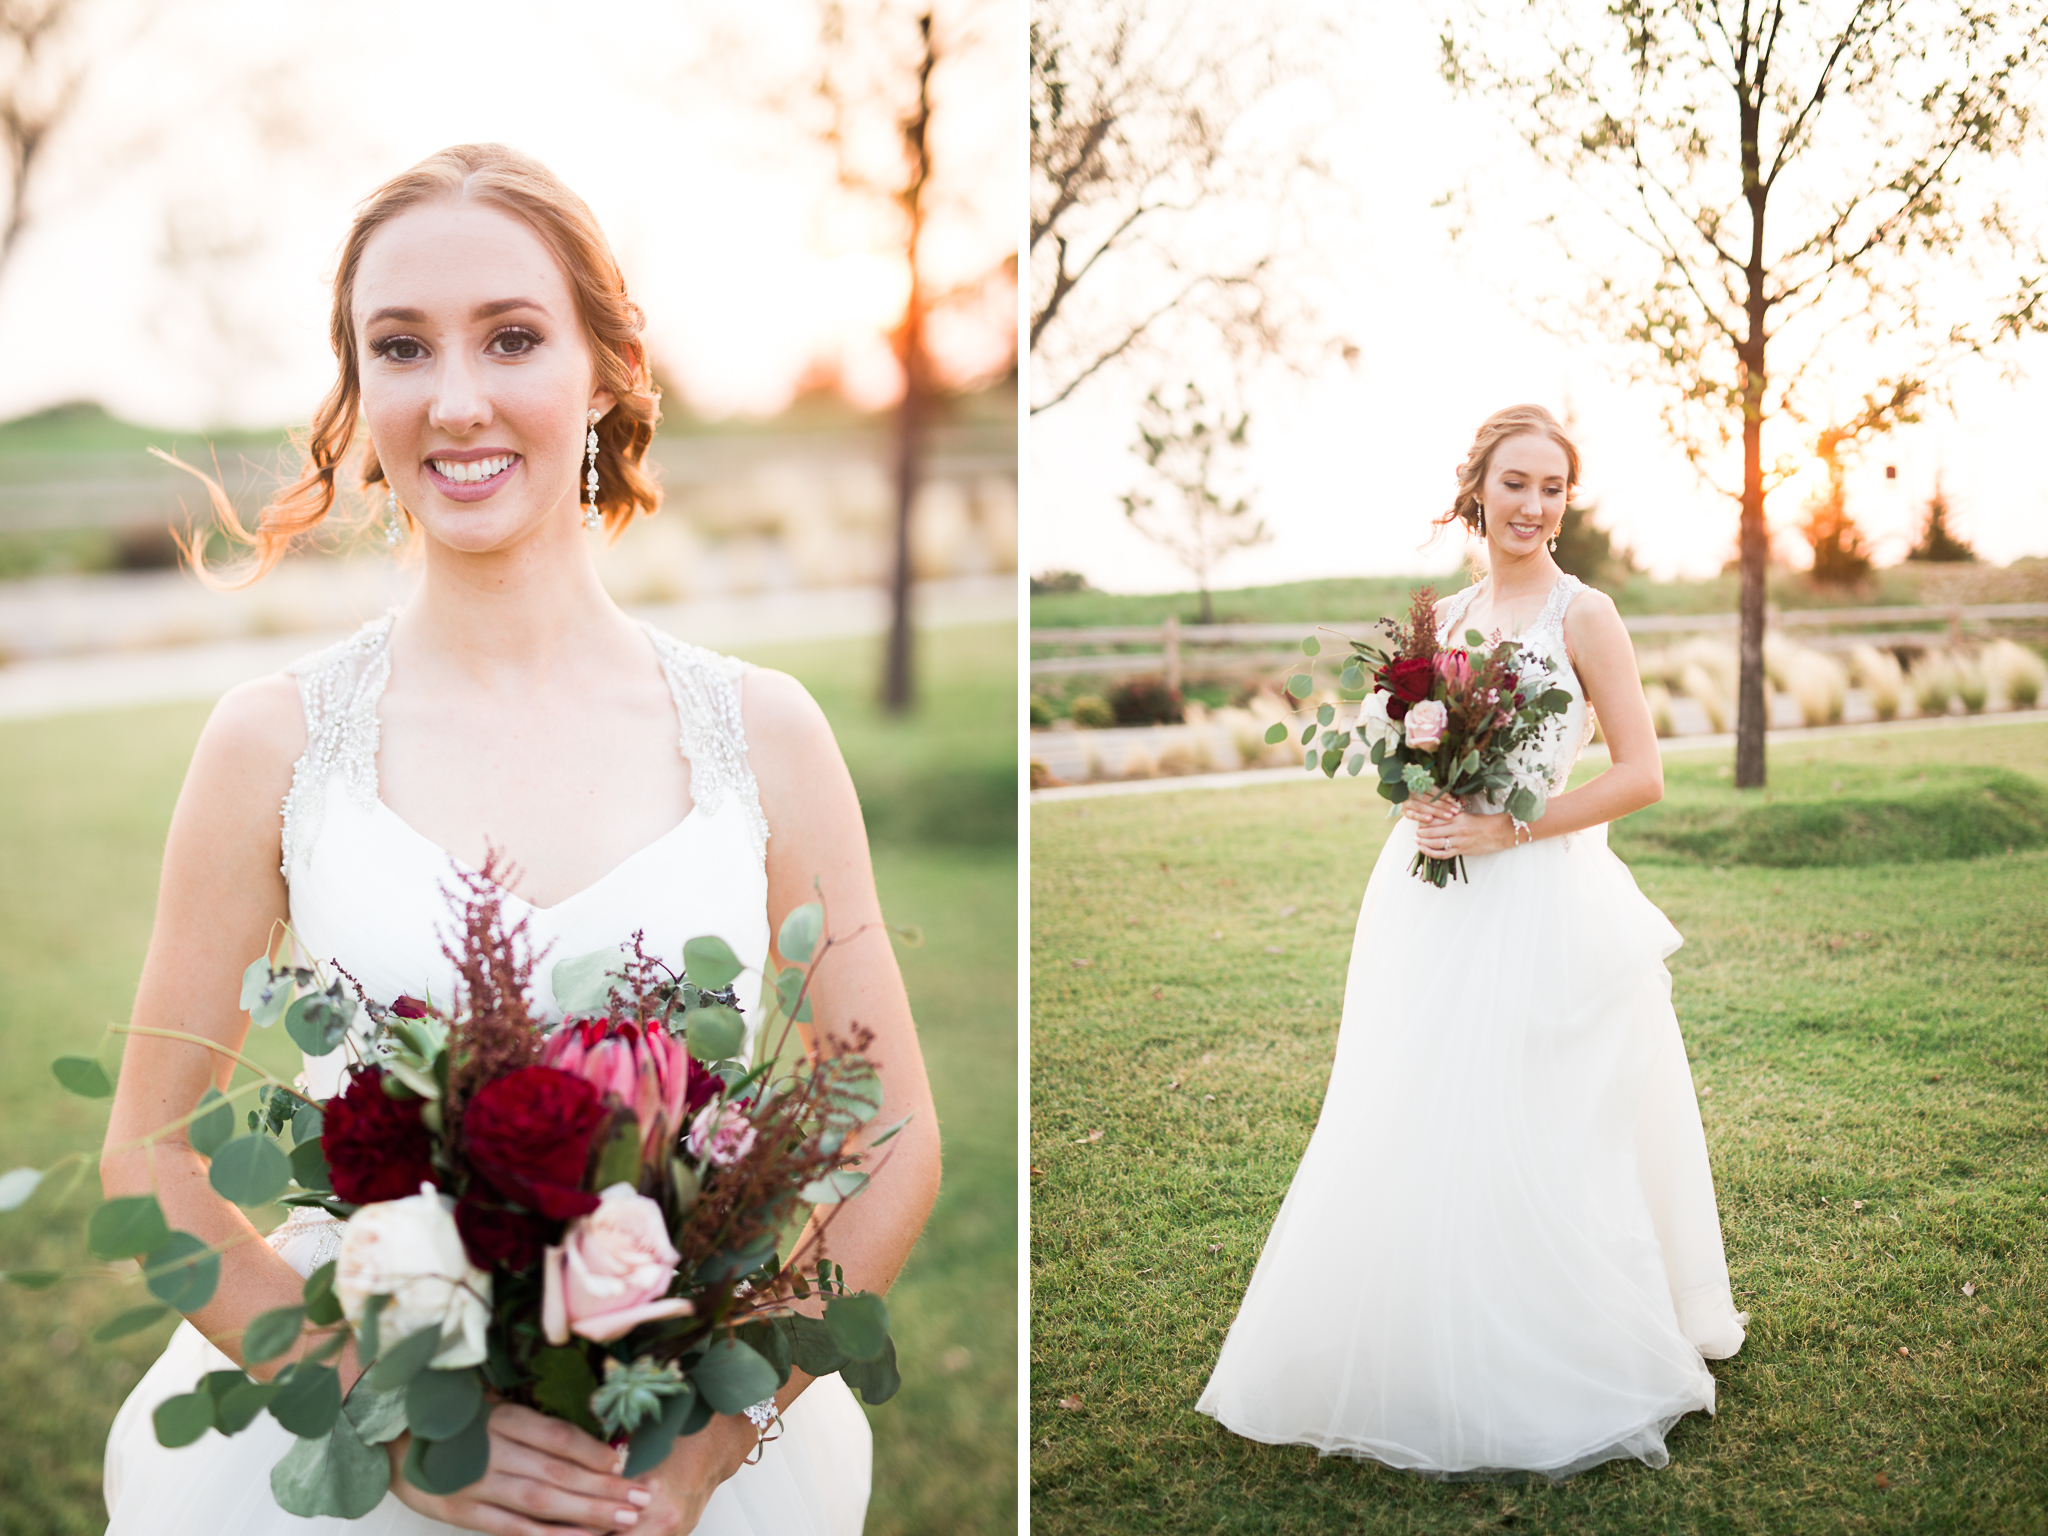 oklahoma_wedding_photographer_ou_jimmieaustin_oklahoma4.jpg